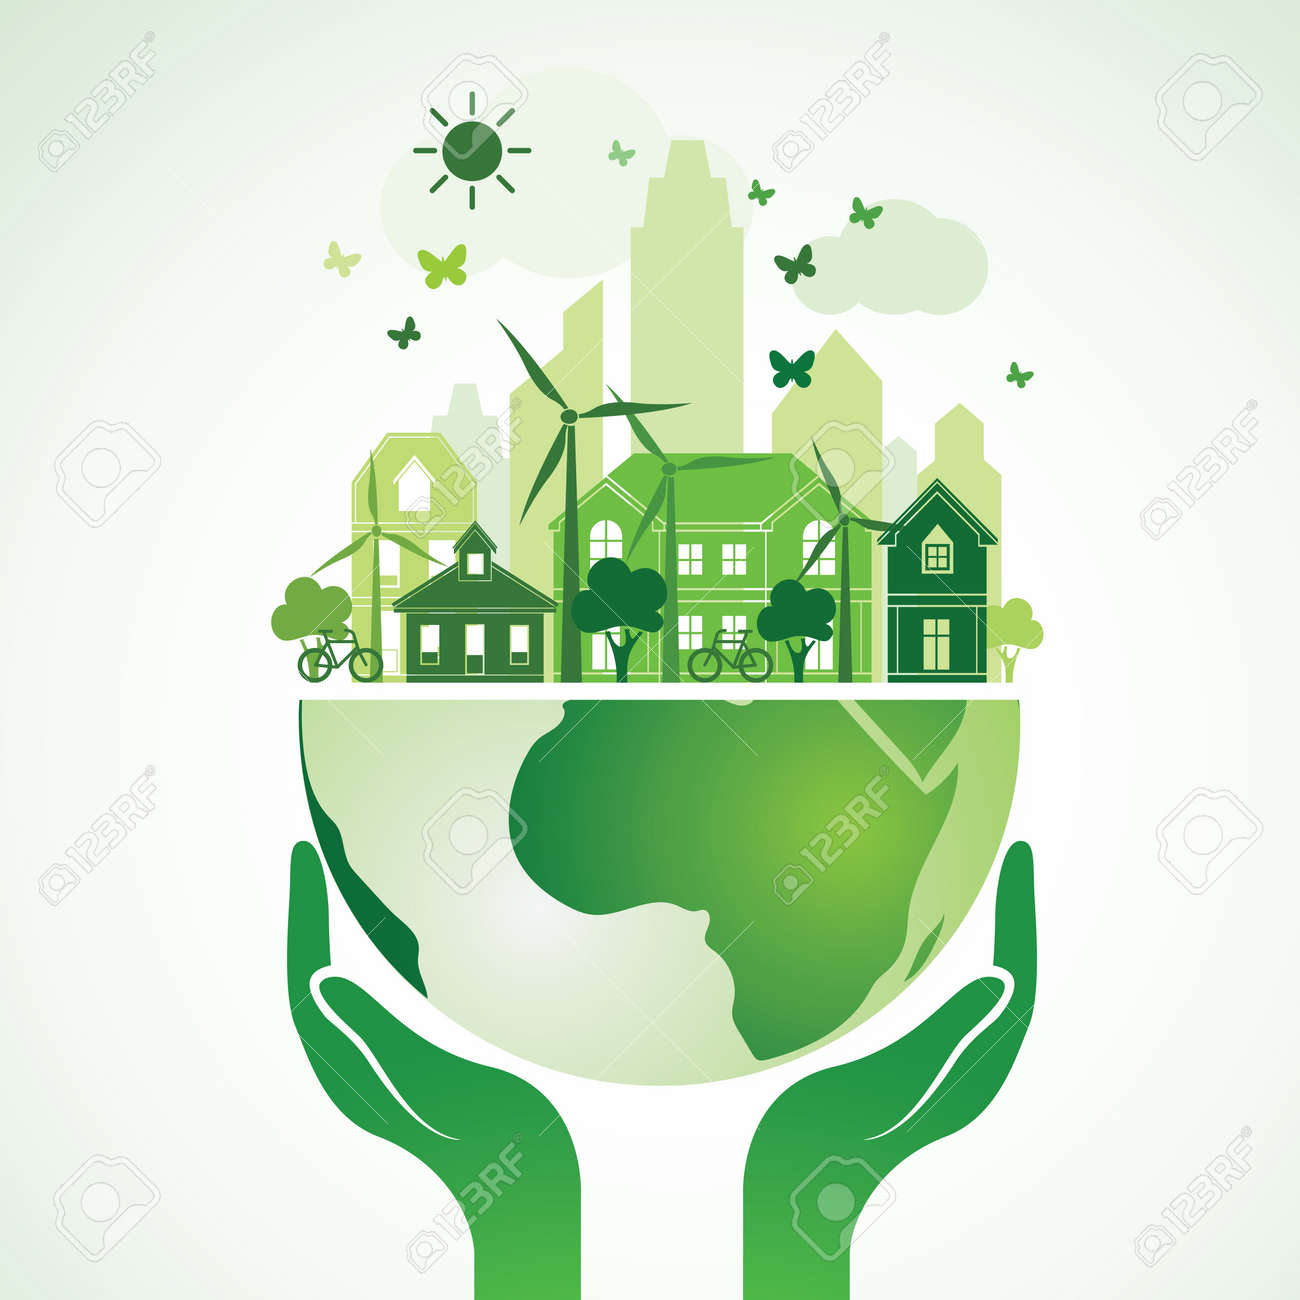 Hands Holding The Green Earth Globe with city ,Vector Illustration - 53007445